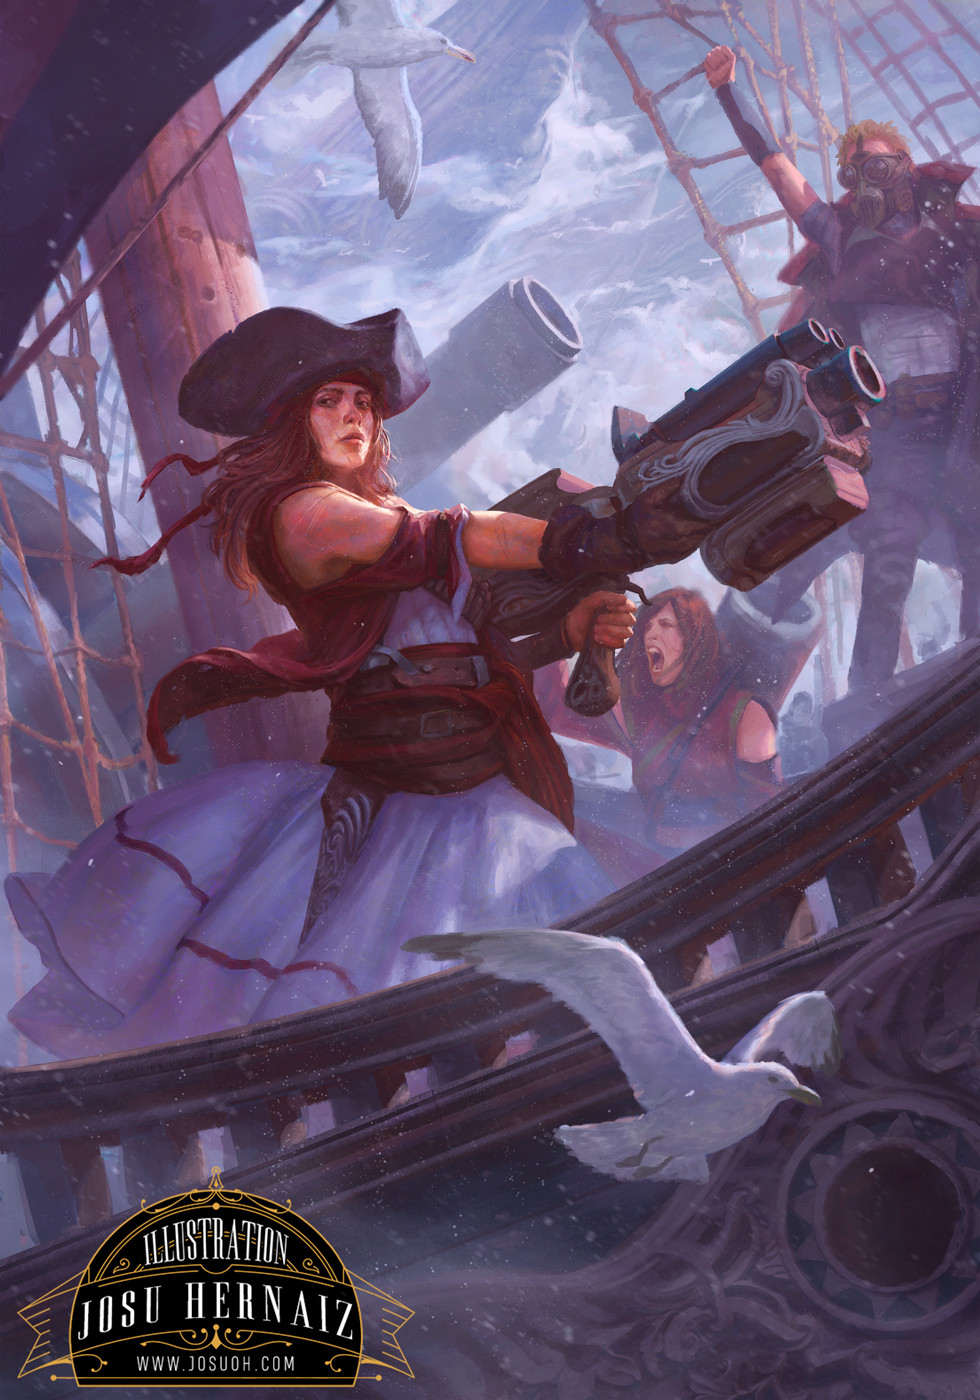 Josu hernaiz pirate token